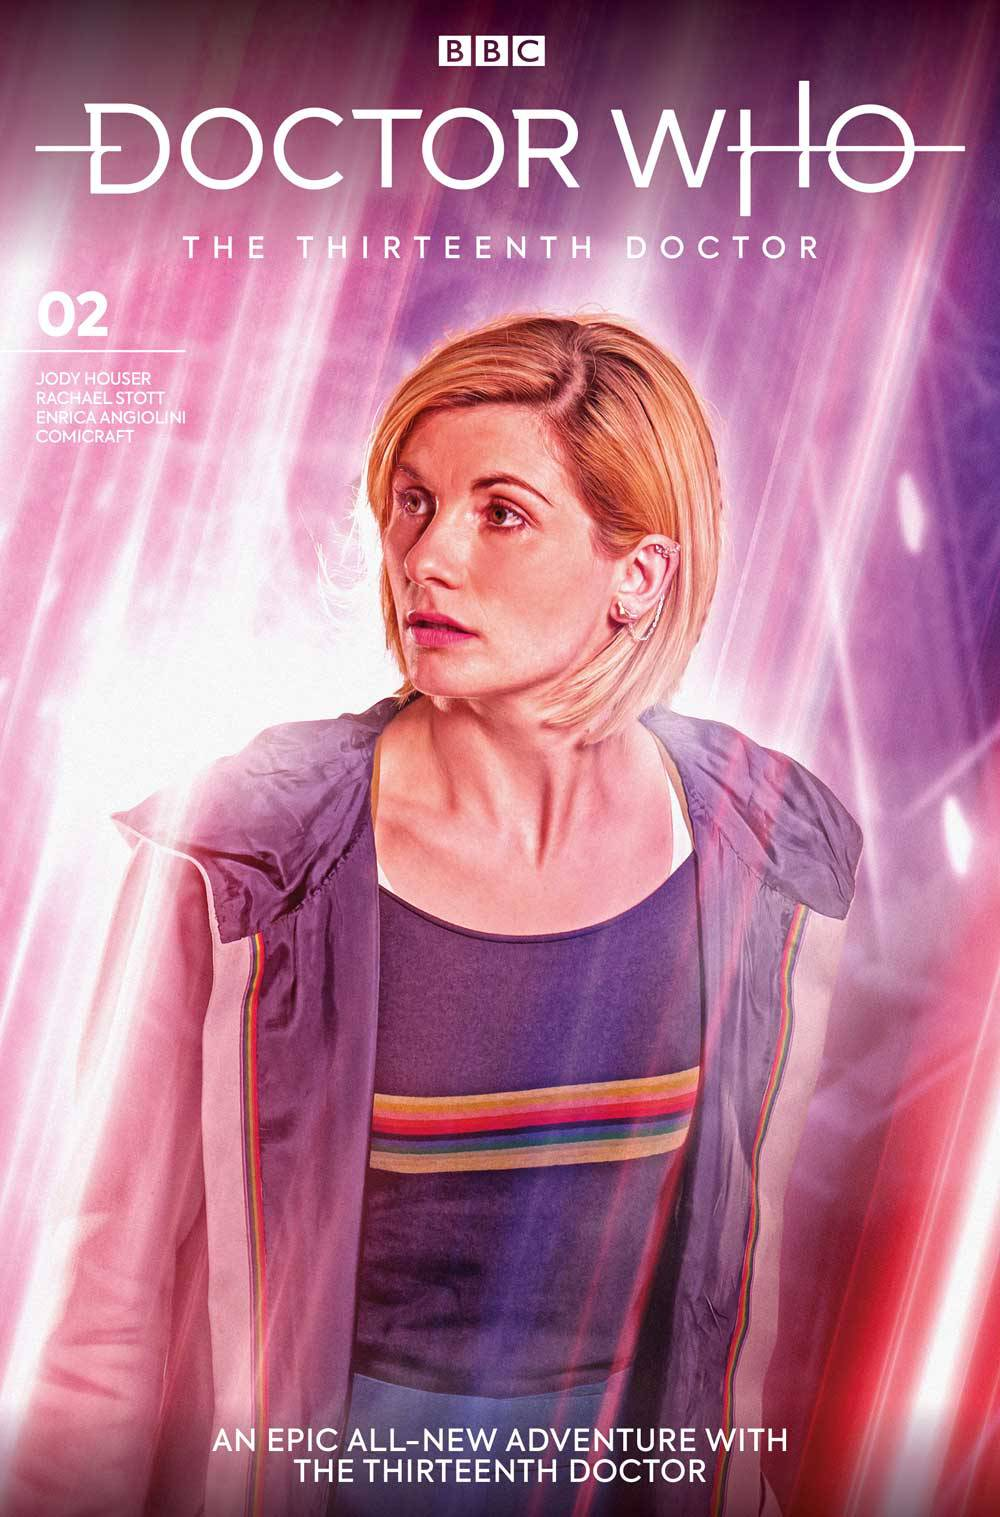 DOCTOR WHO 13TH 2 CVR B BROOKS.jpg